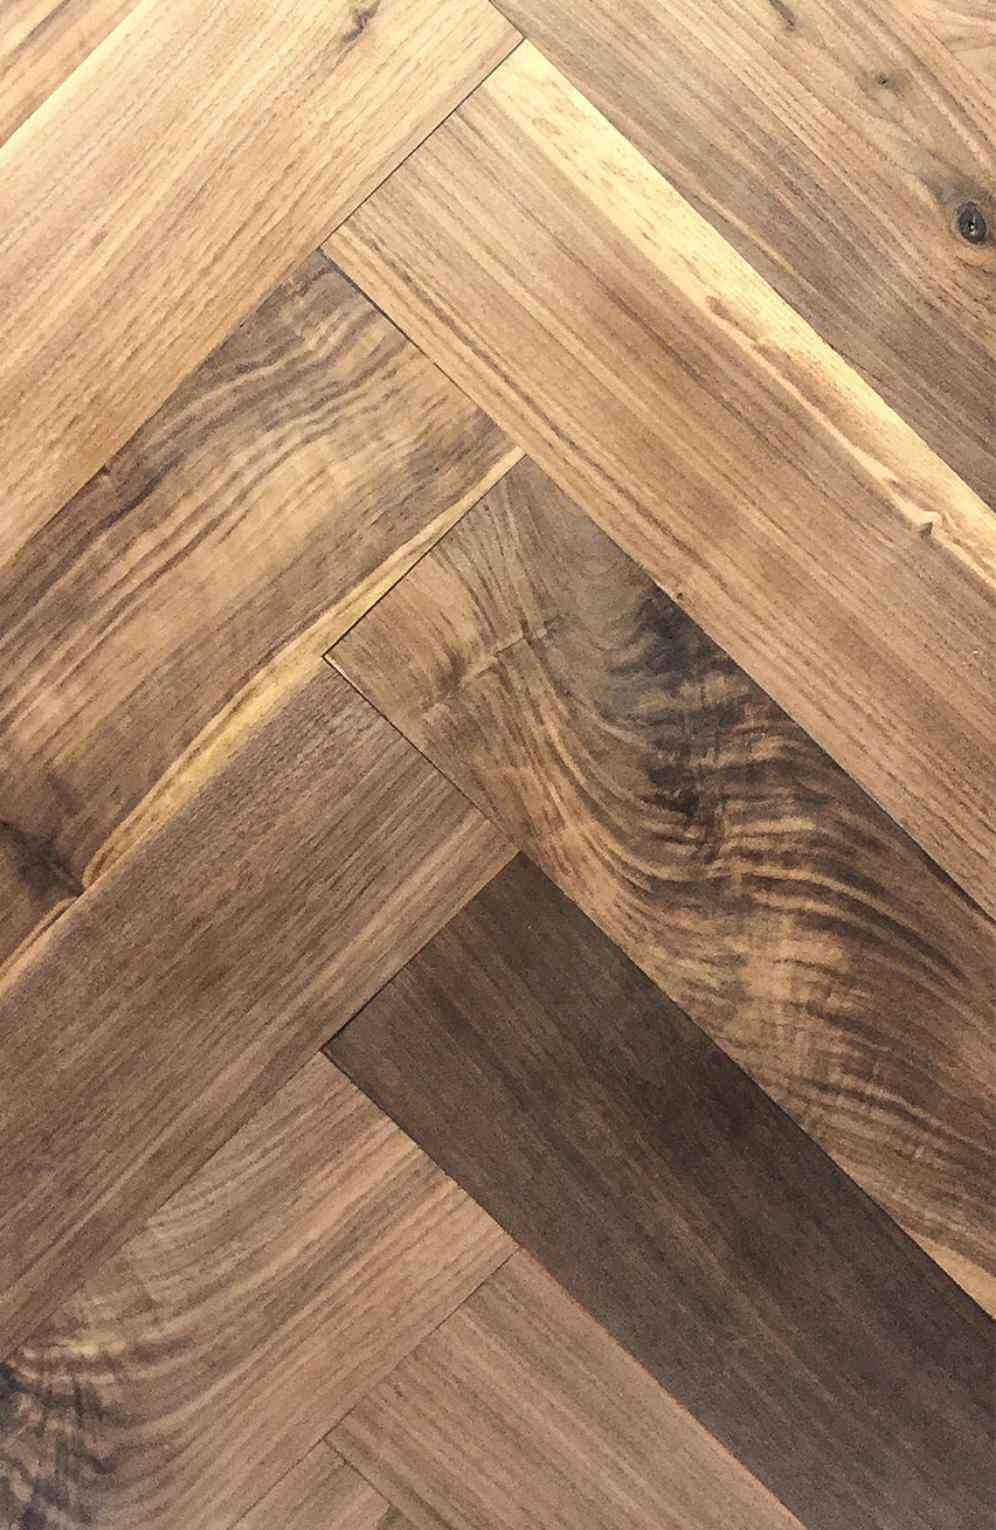 Select Harvest Walnut Hardwood Flooring [Herringbone]